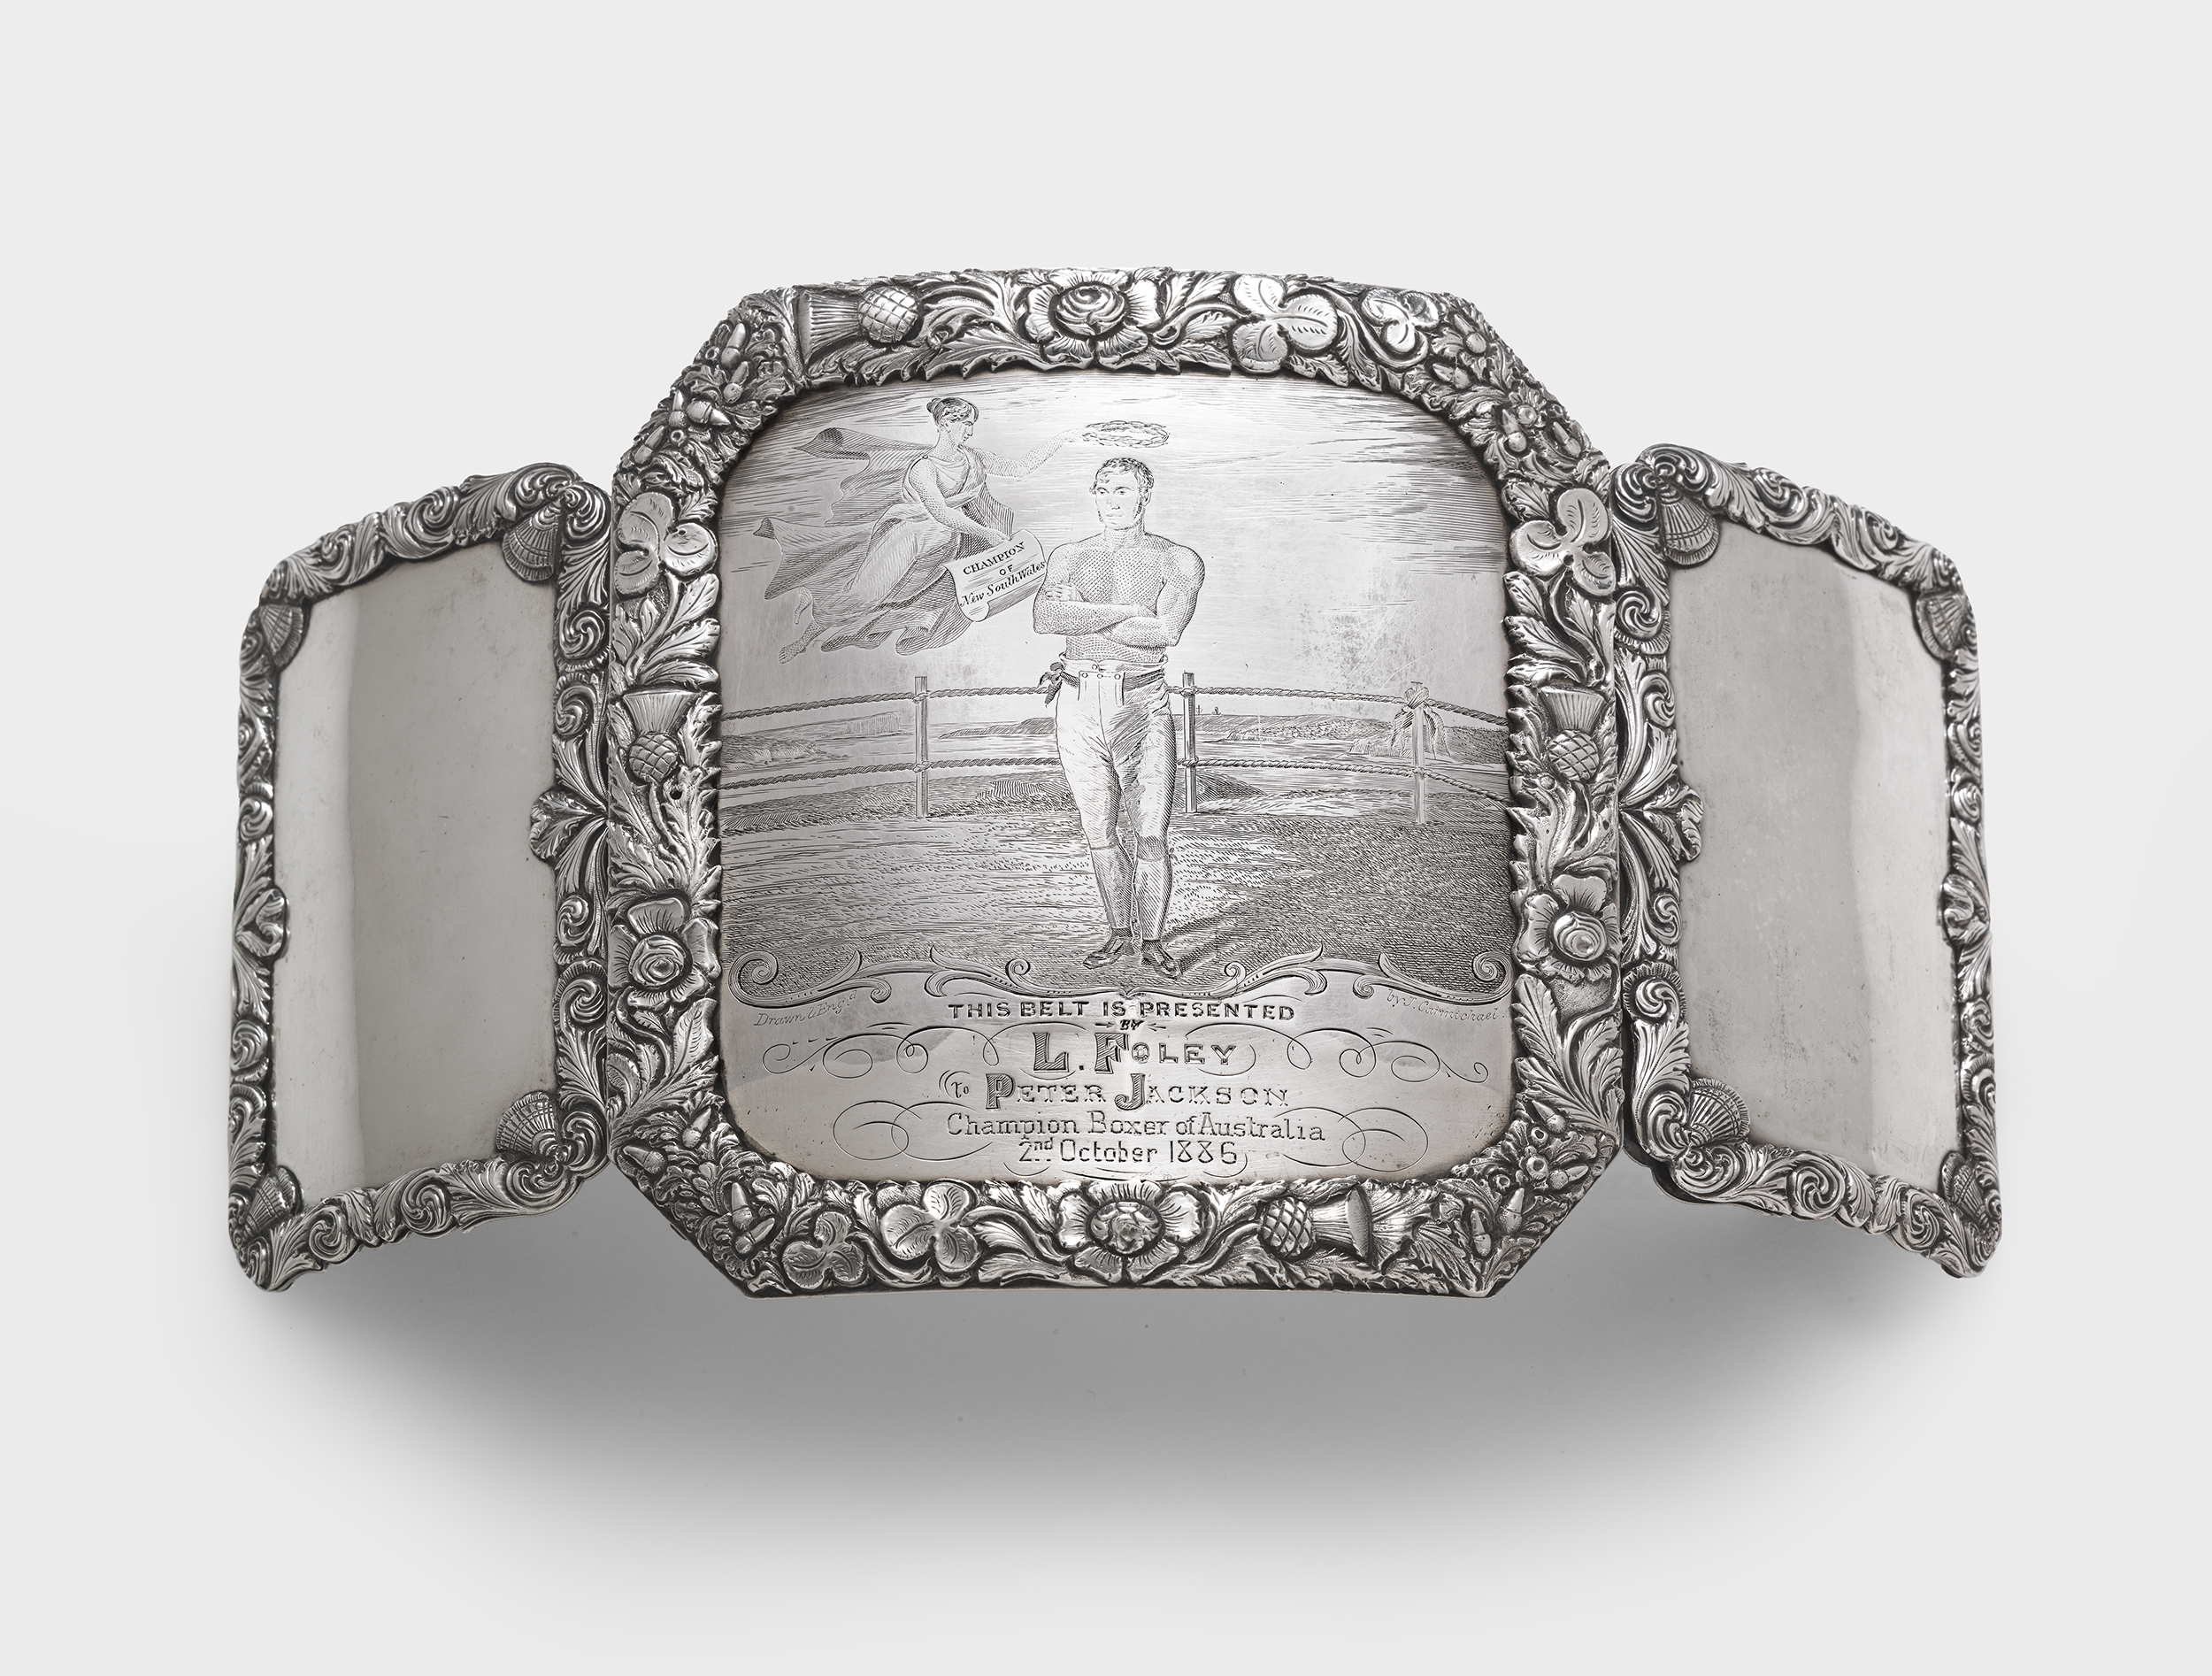 John Cohen  (silversmith) and  John Carmichael  (engraver). Presentation champion's boxing belt buckle 1839-1847 sterling silver: fabricated, stamped, repousséed, chased, engraved. National Gallery of Australia, Canberra. Purchased 2014